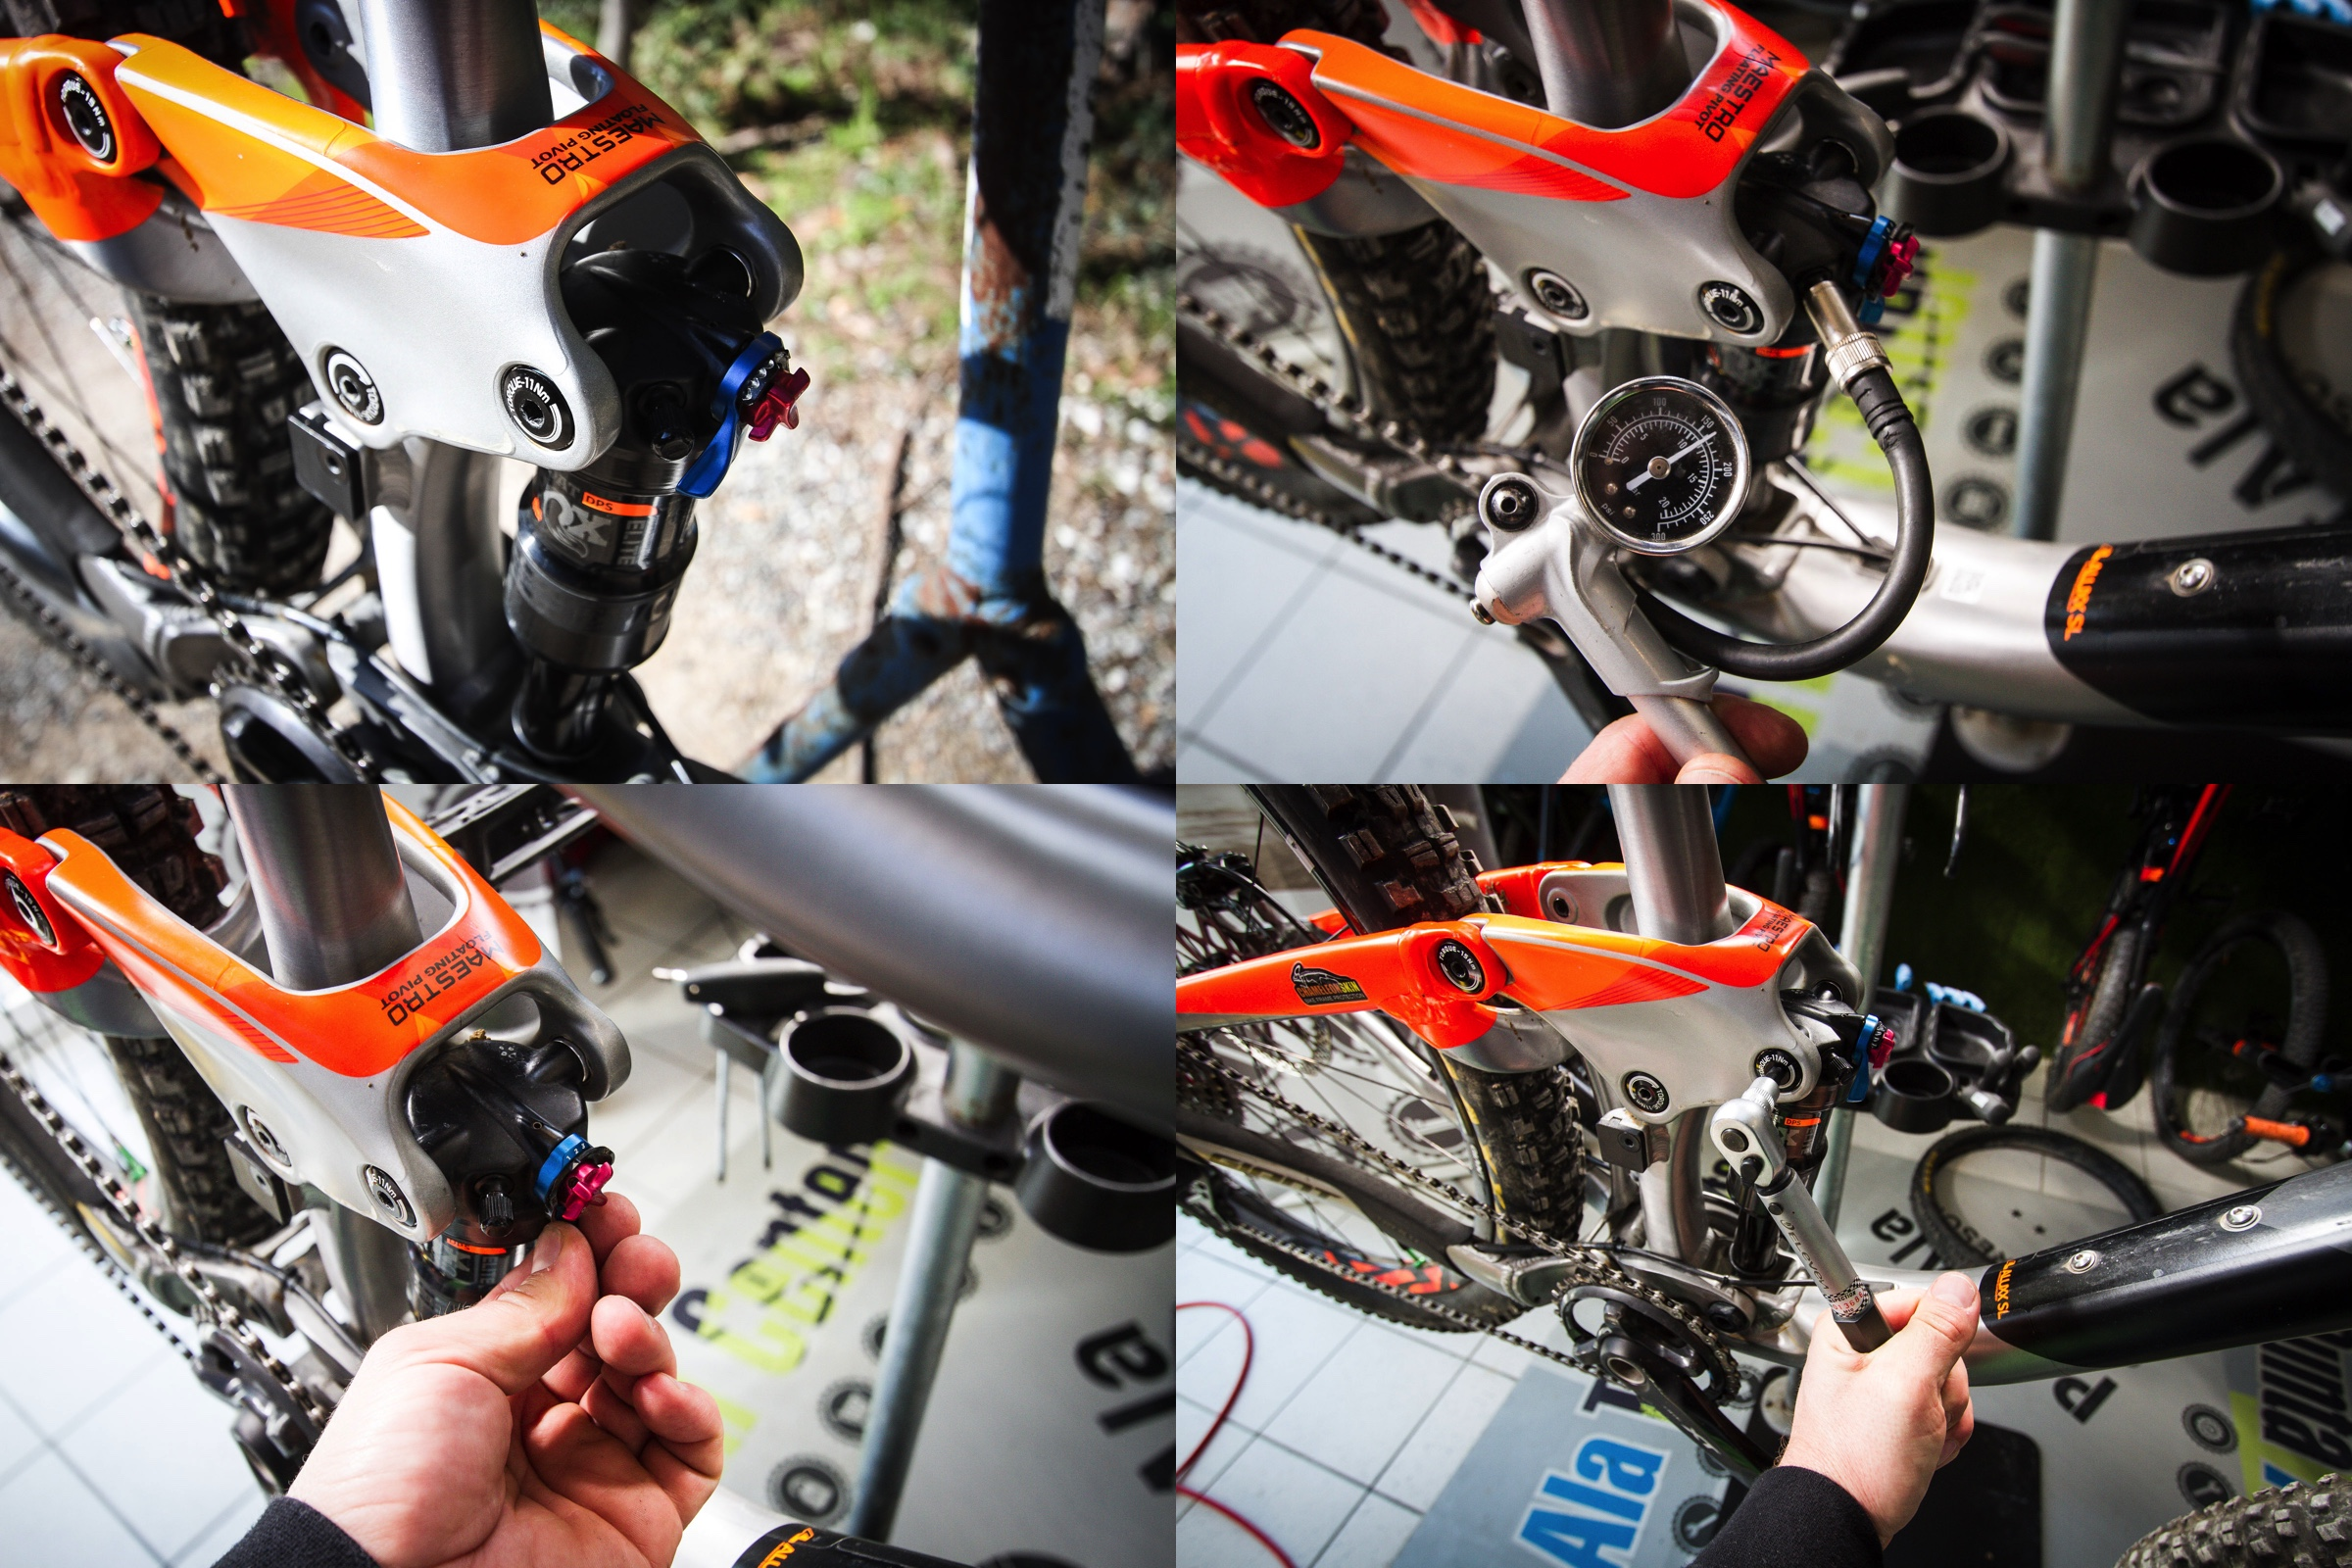 The rear shock needs a lot of attention here, firstly we check the pressure and set the sag, then we check that the lockout parts work correctly then we check the pivots are tight. The pivot bushings are wear items and need close attention and changing if they have any play in them.